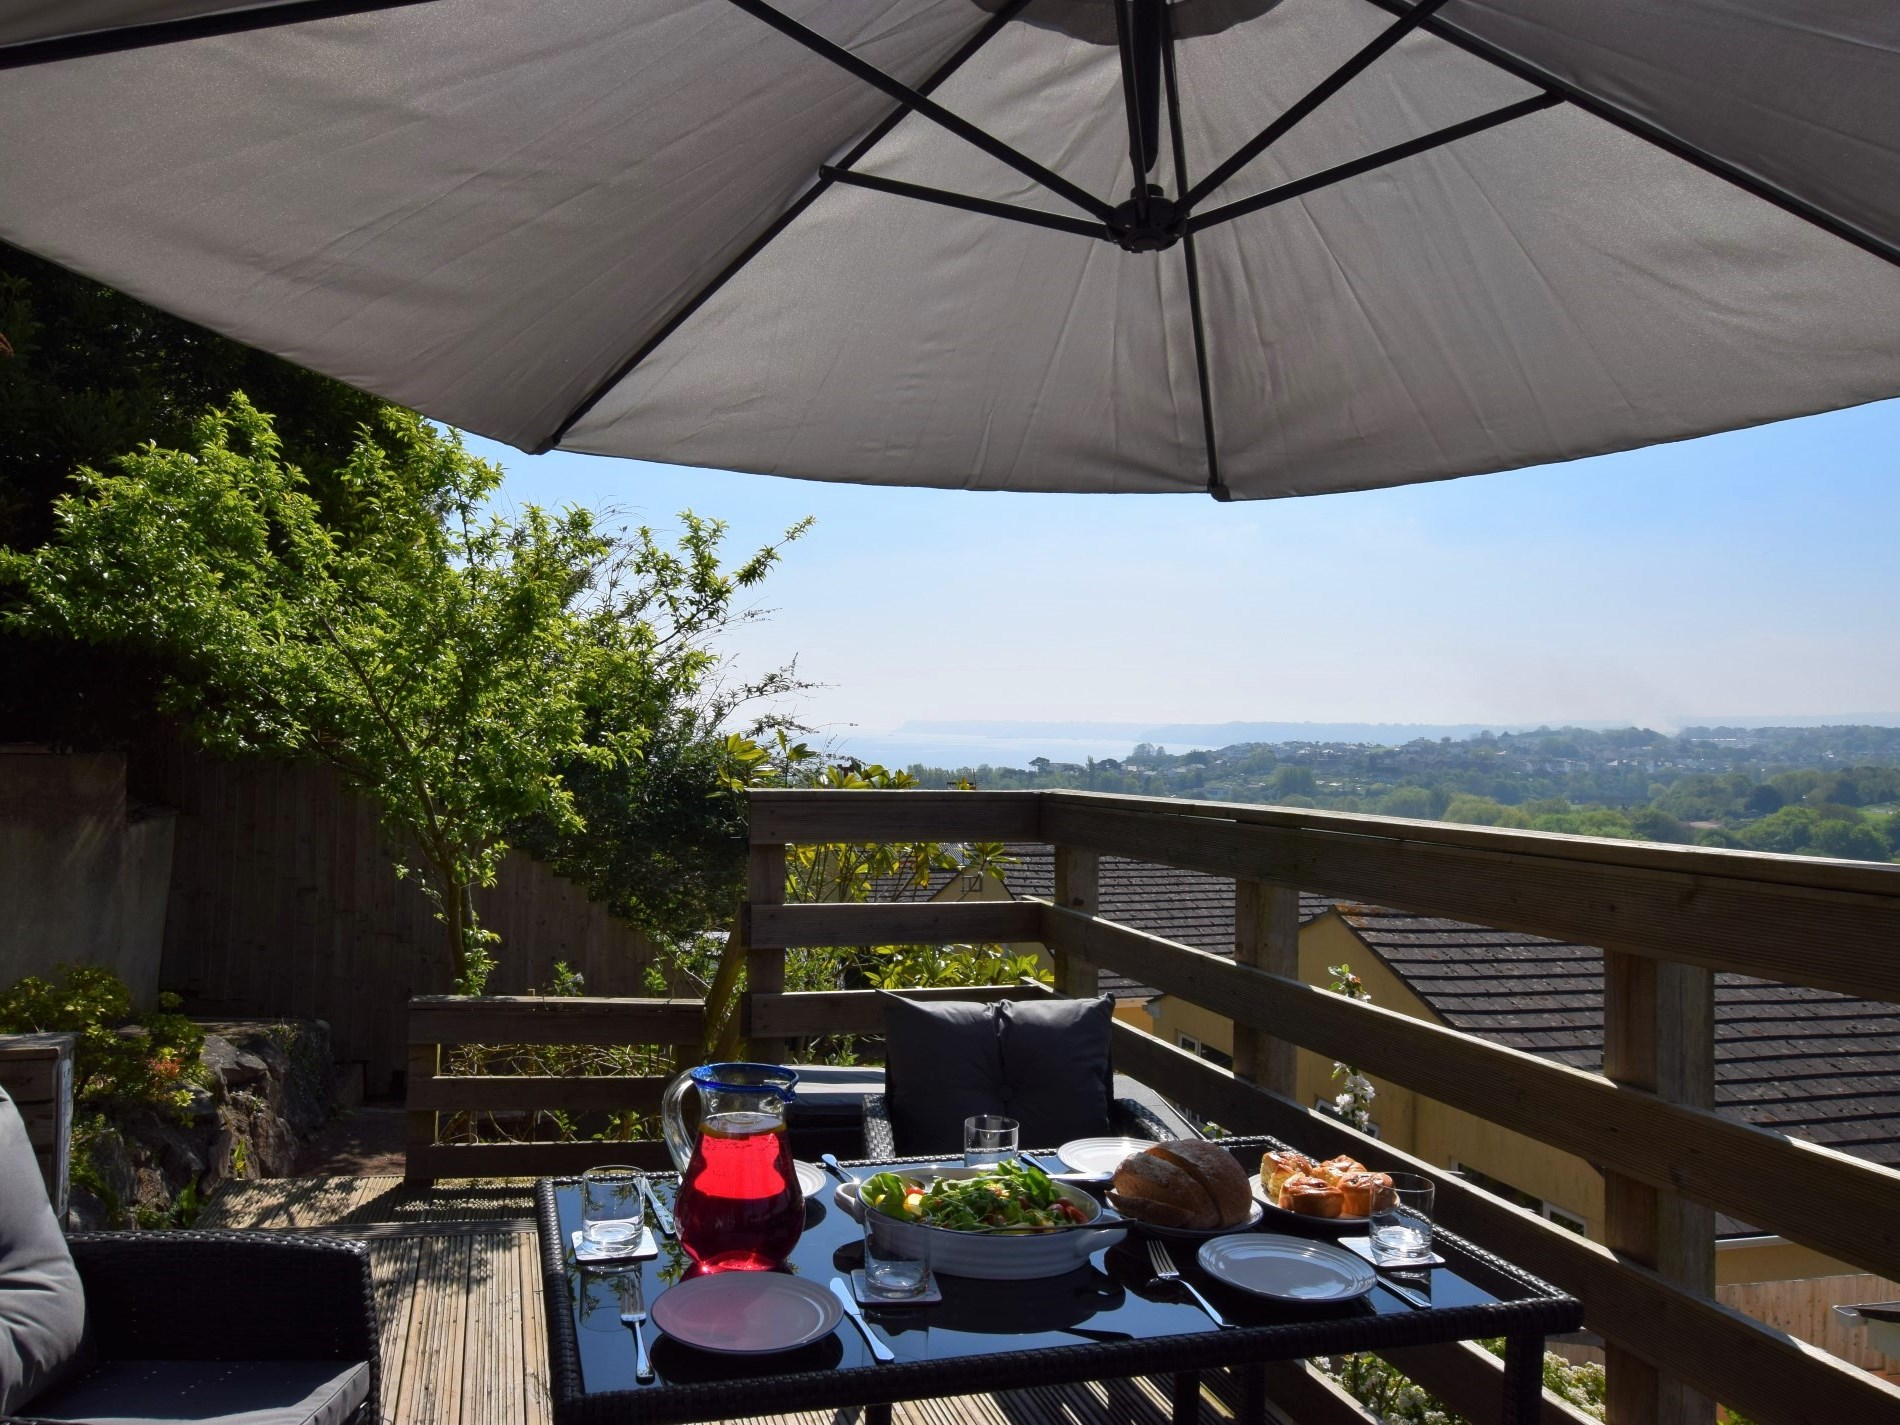 Al fresco dining with sea views from the raised decked terrace